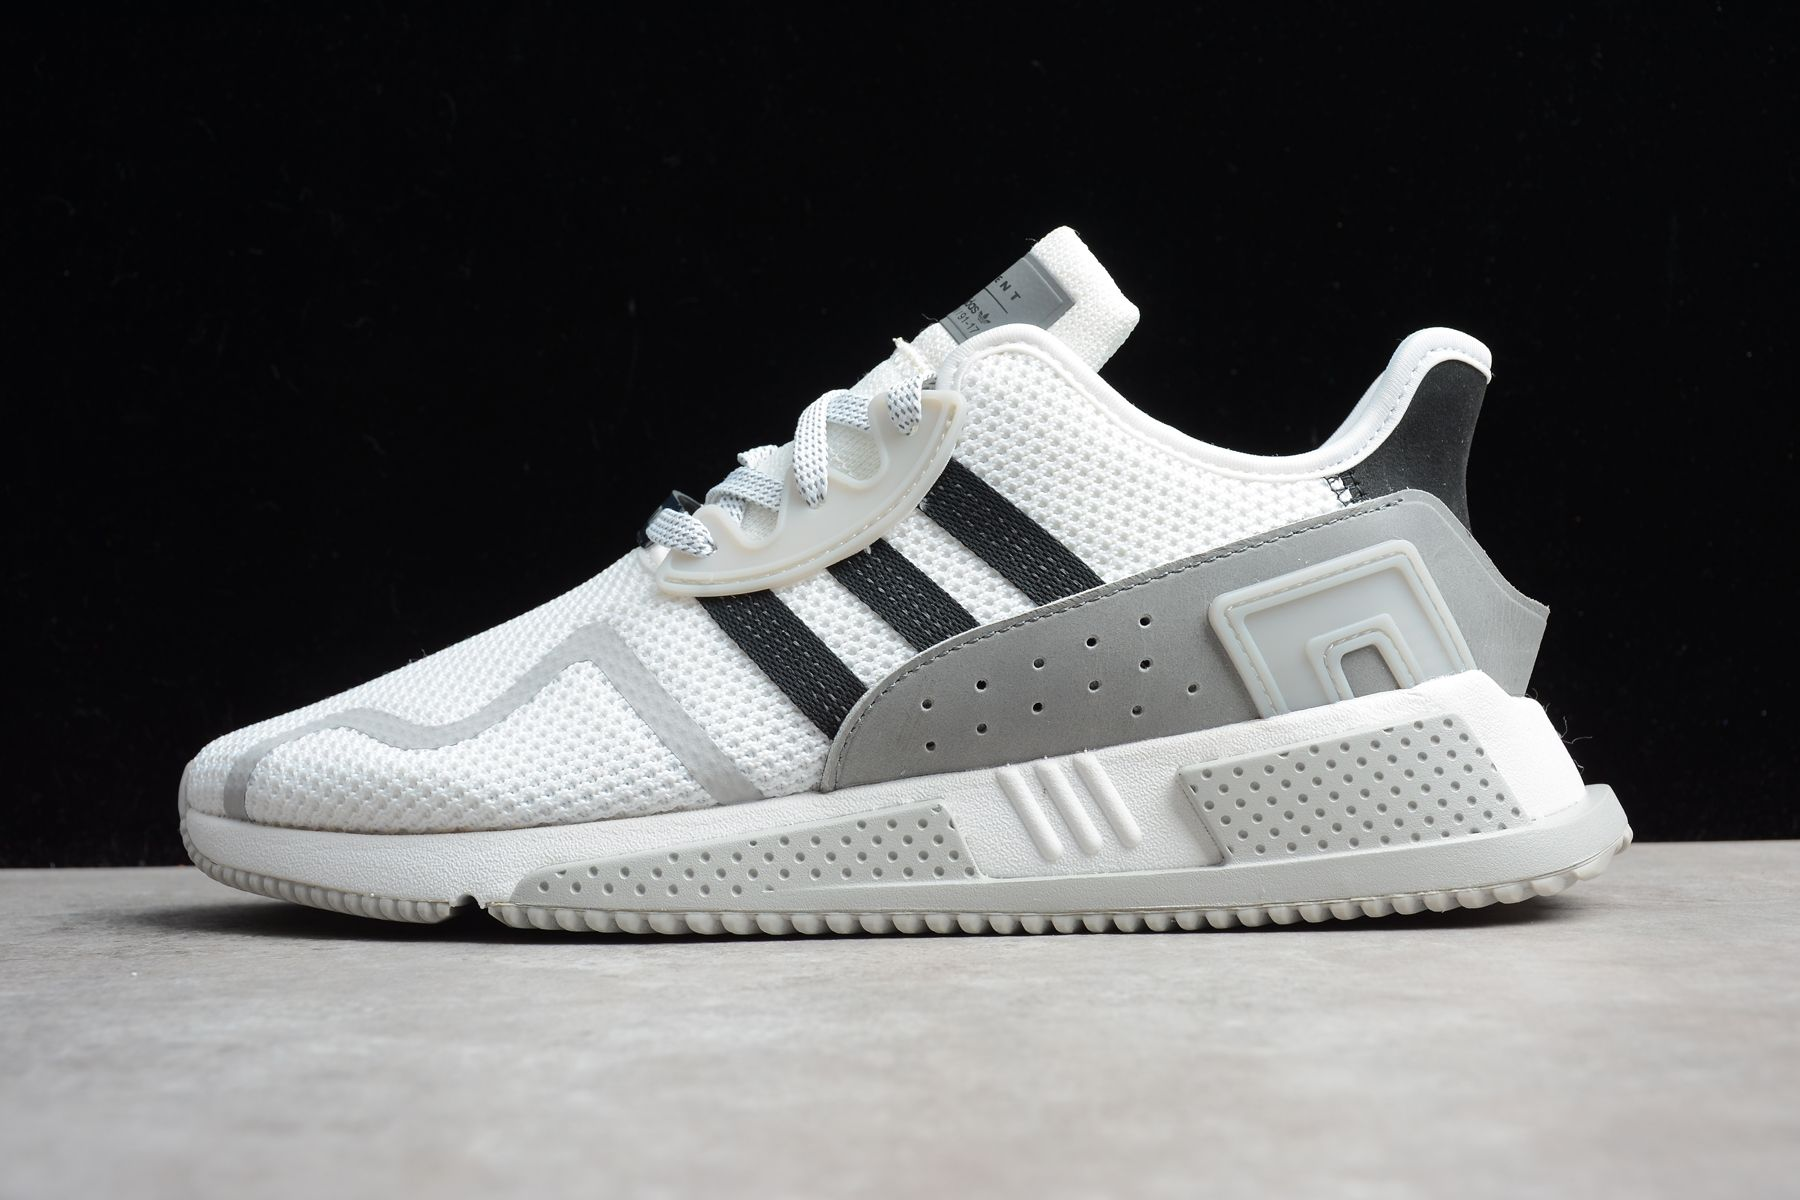 2018 UK FR Trainers ADIDAS EQUIPMENT EQT CUSHION ADV 91-17 White Black  BY9508 b04c6ebba